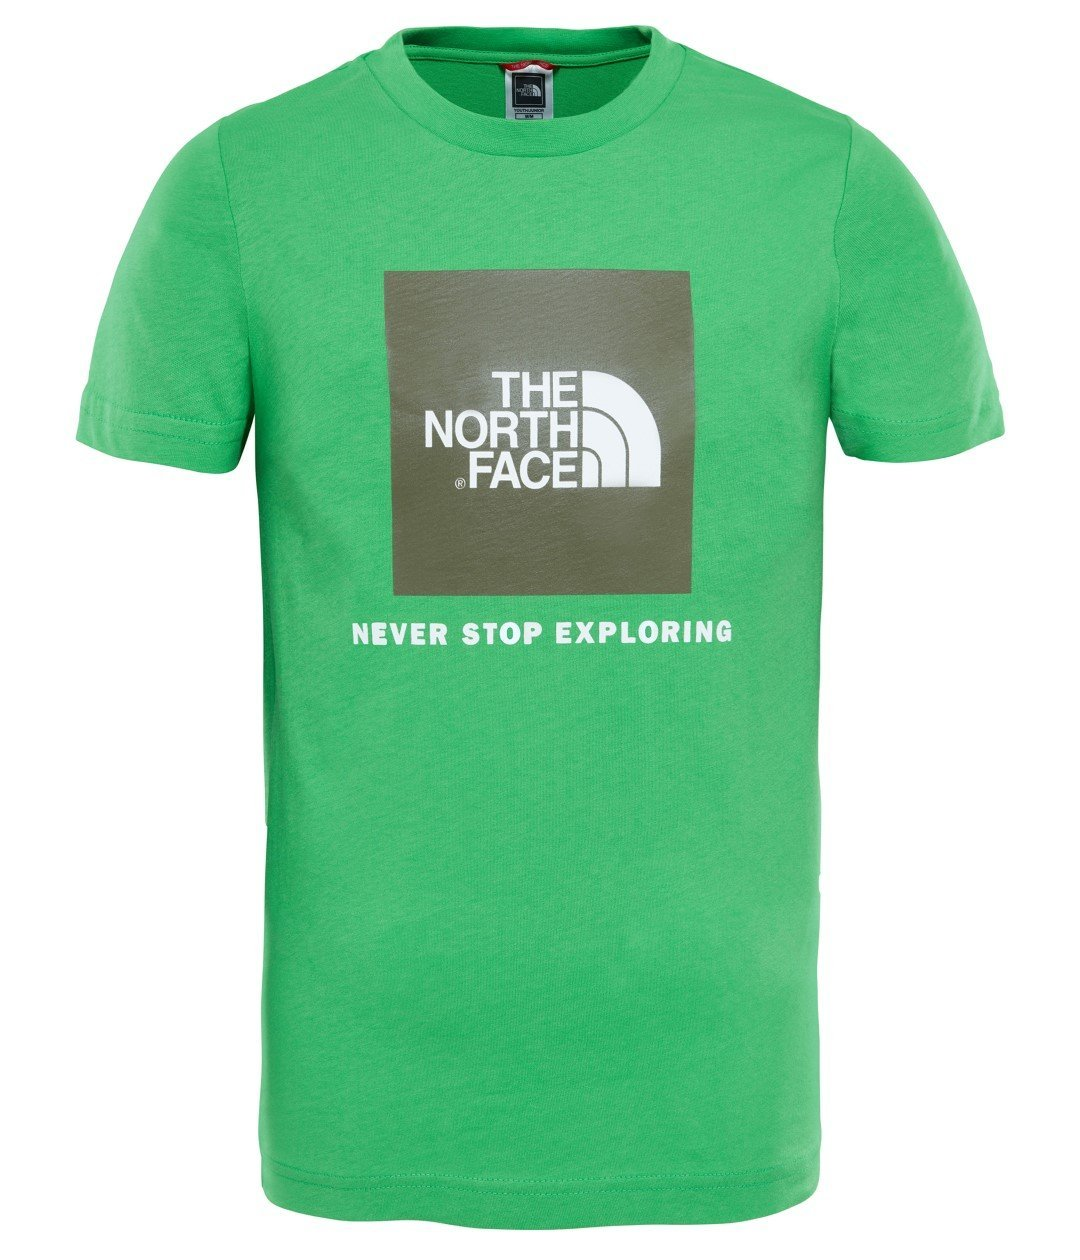 THE NORTH FACE und Box S/S Tee Classic Green T-Shirt, Damen